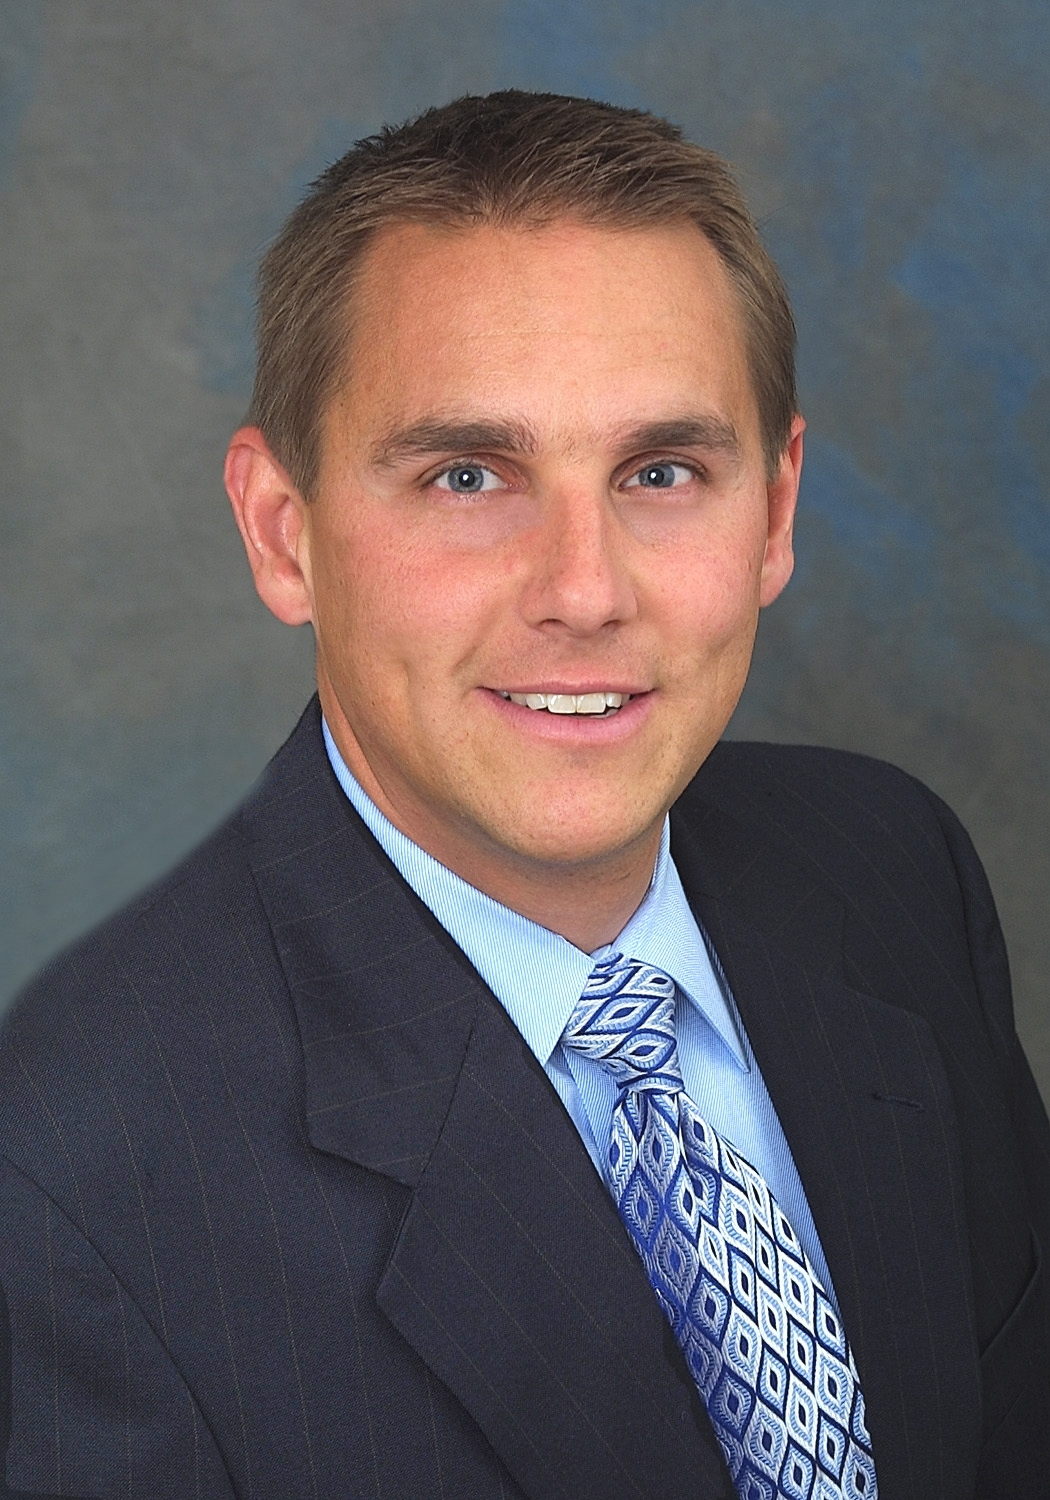 Ryan Wibberley, Financial Advisor from Rockville, Maryland